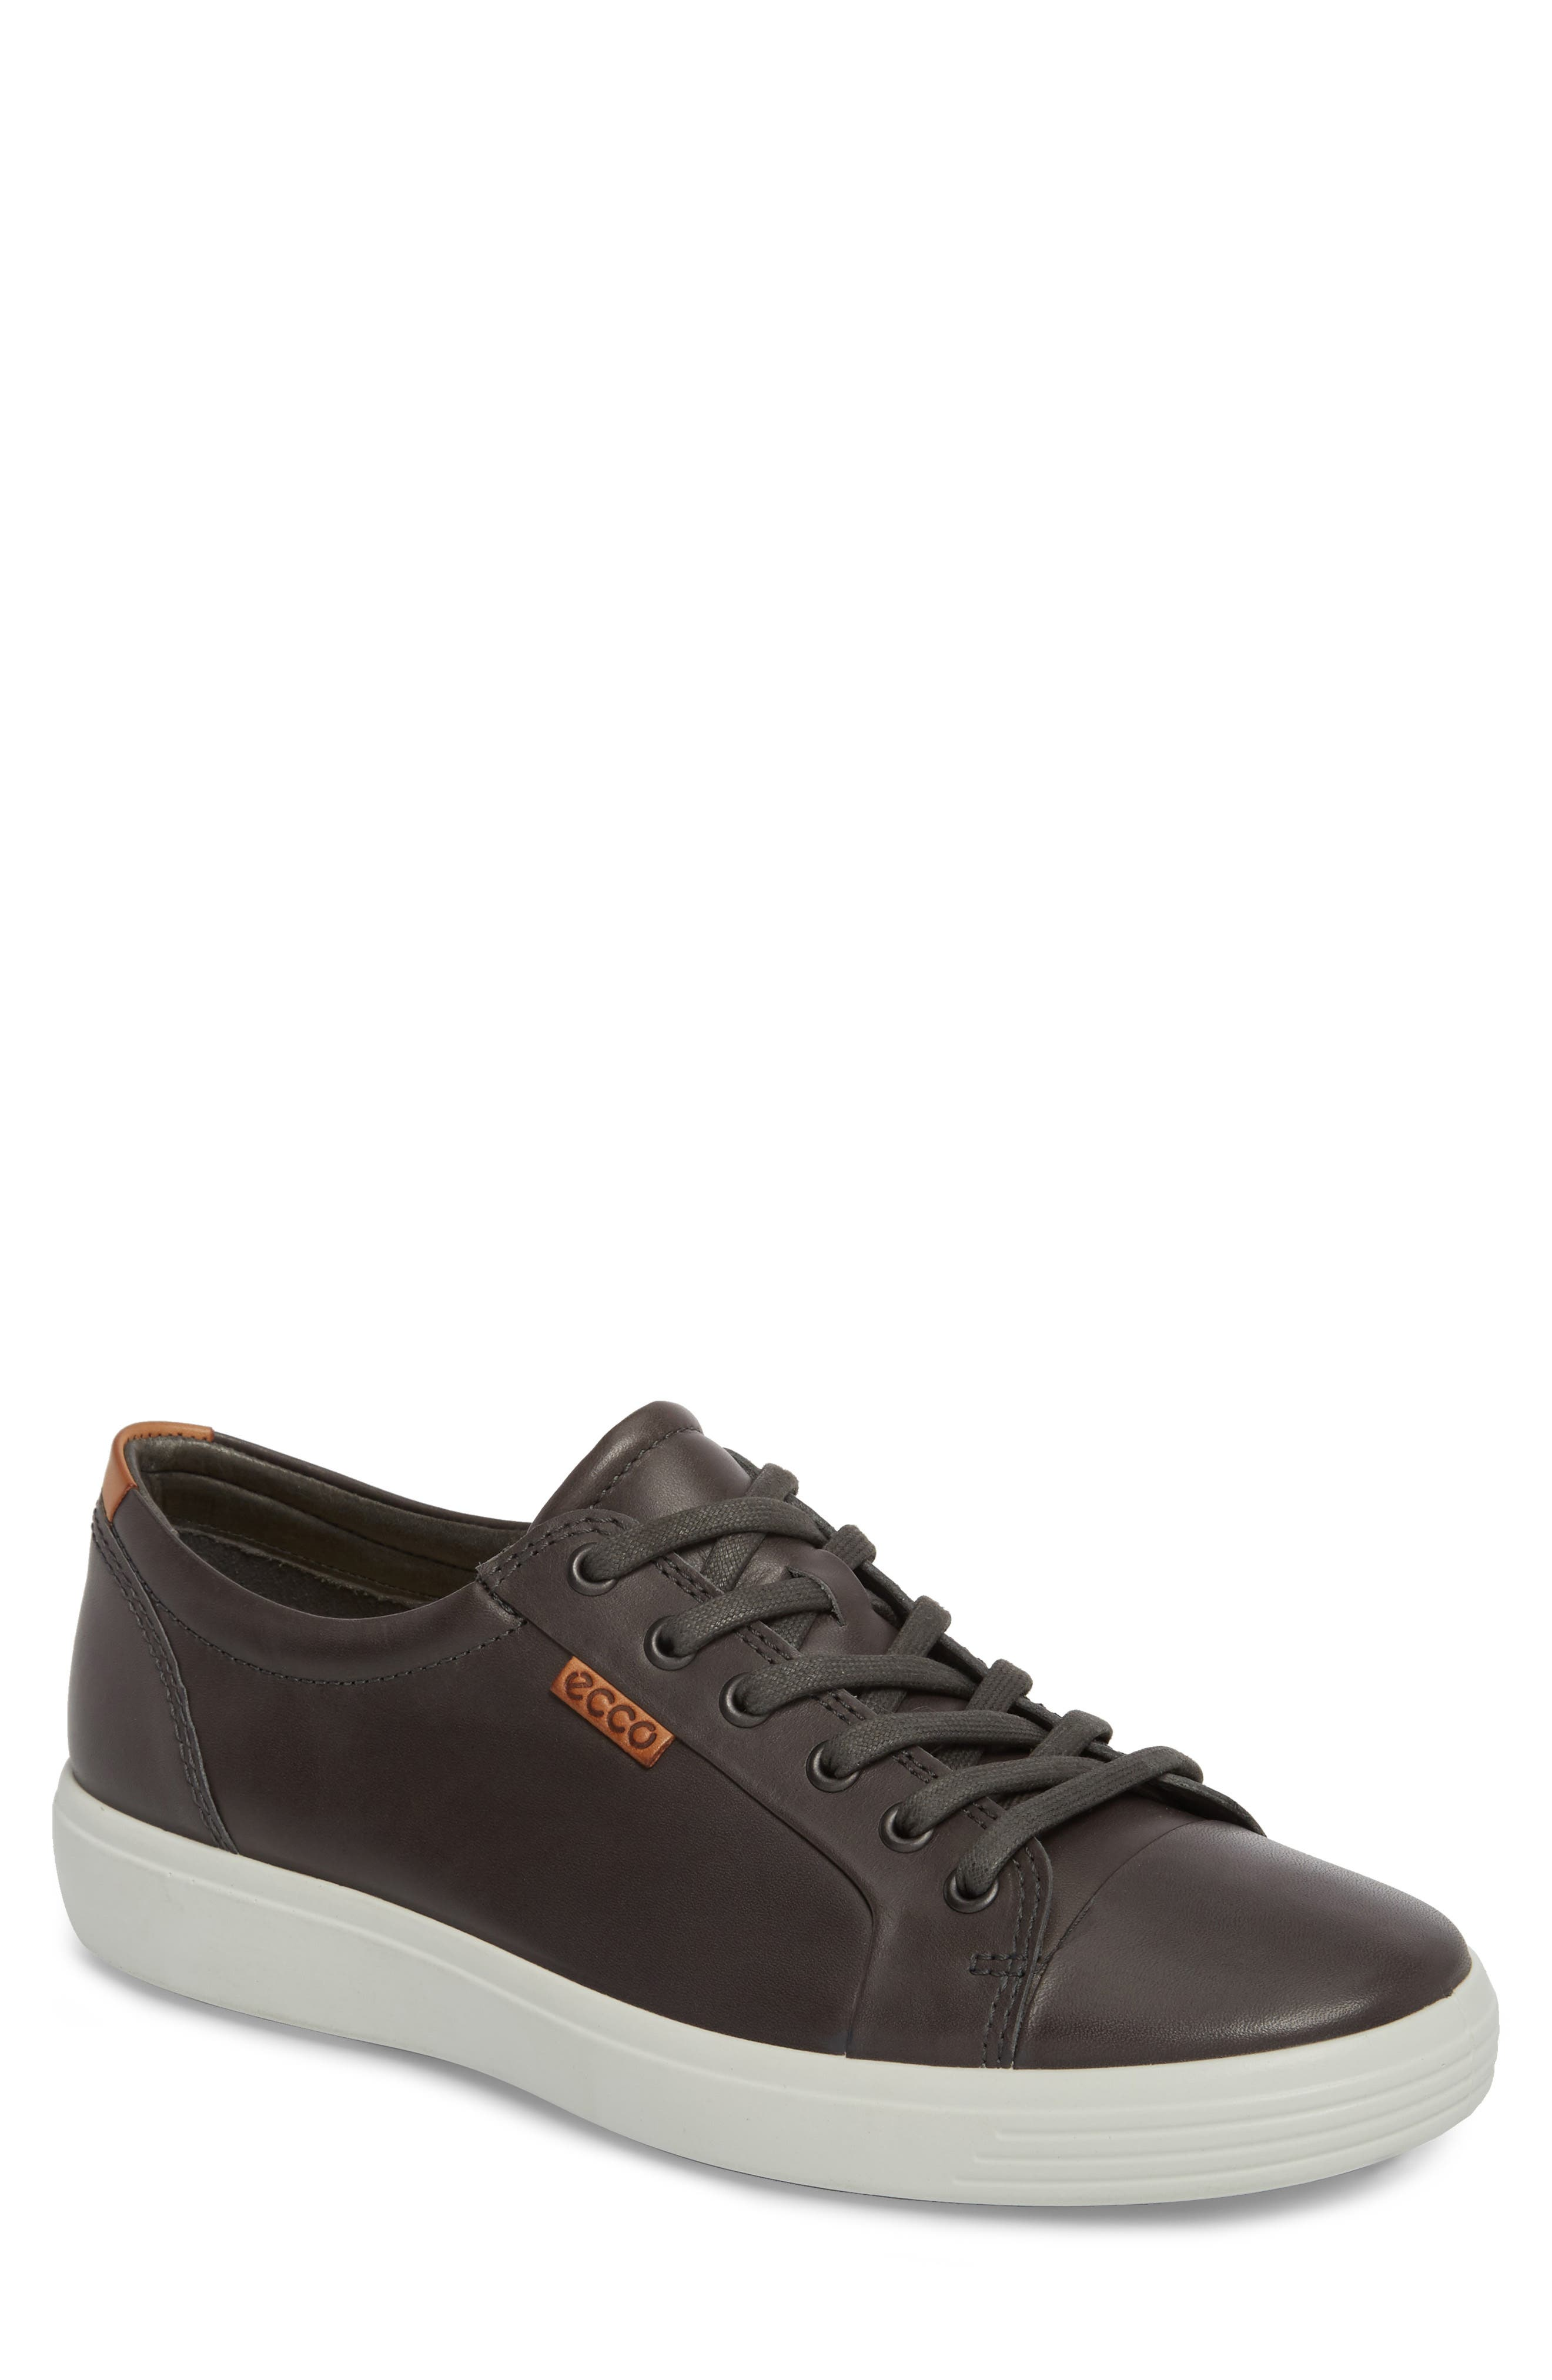 Soft VII Lace-Up Sneaker,                             Main thumbnail 3, color,